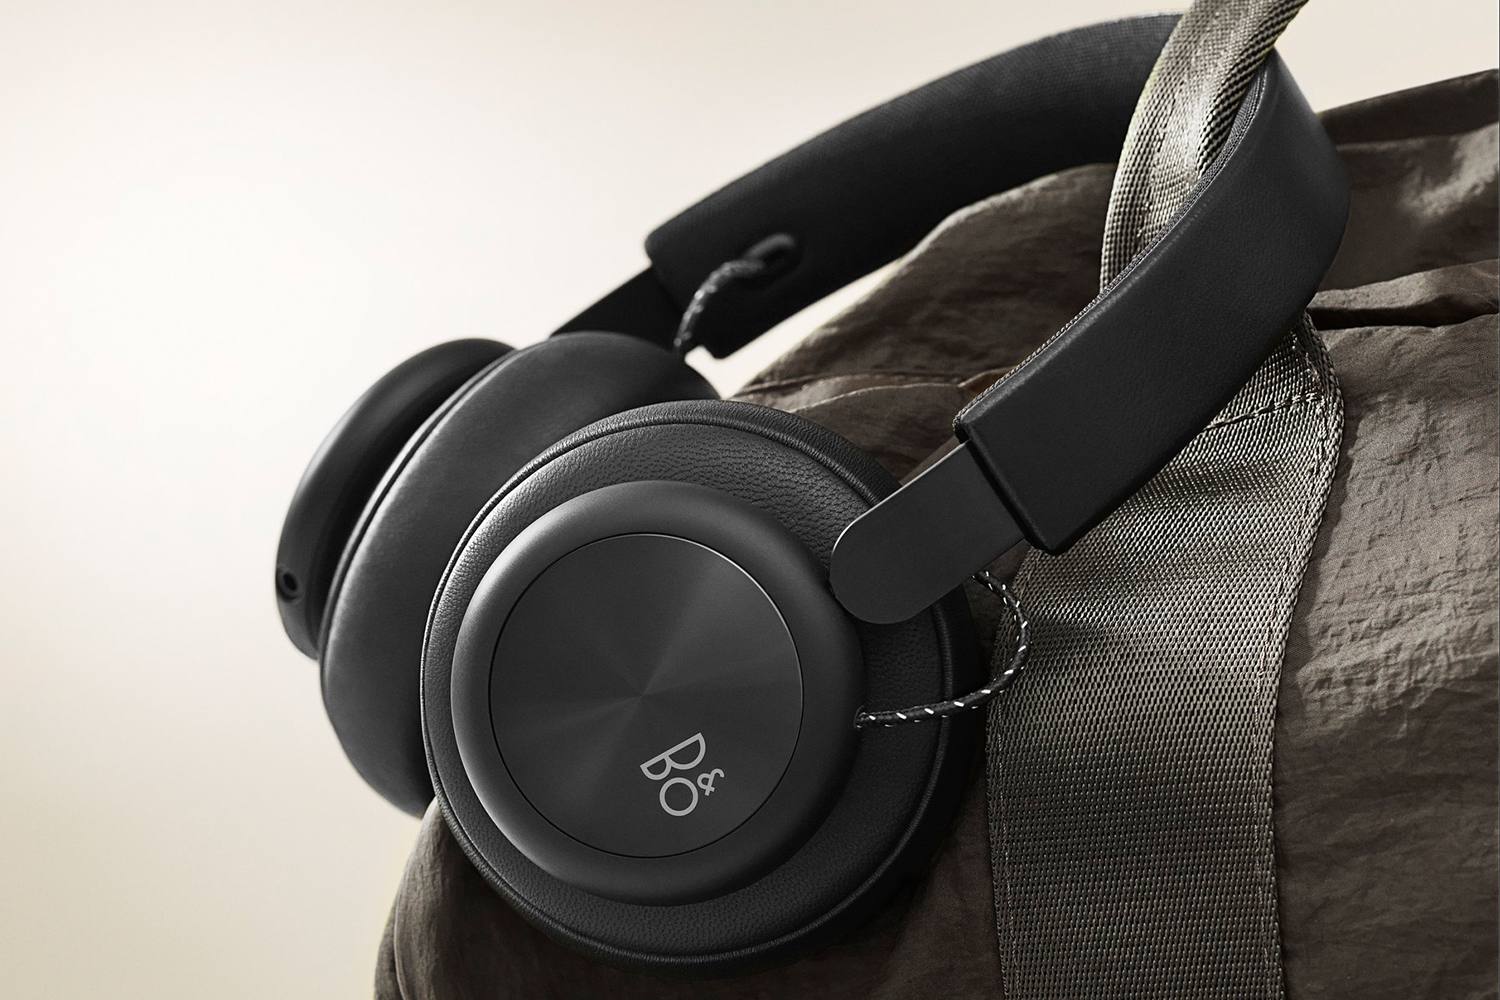 Take $110 off Bang & Olufsen Beoplay H4 wireless headphones.